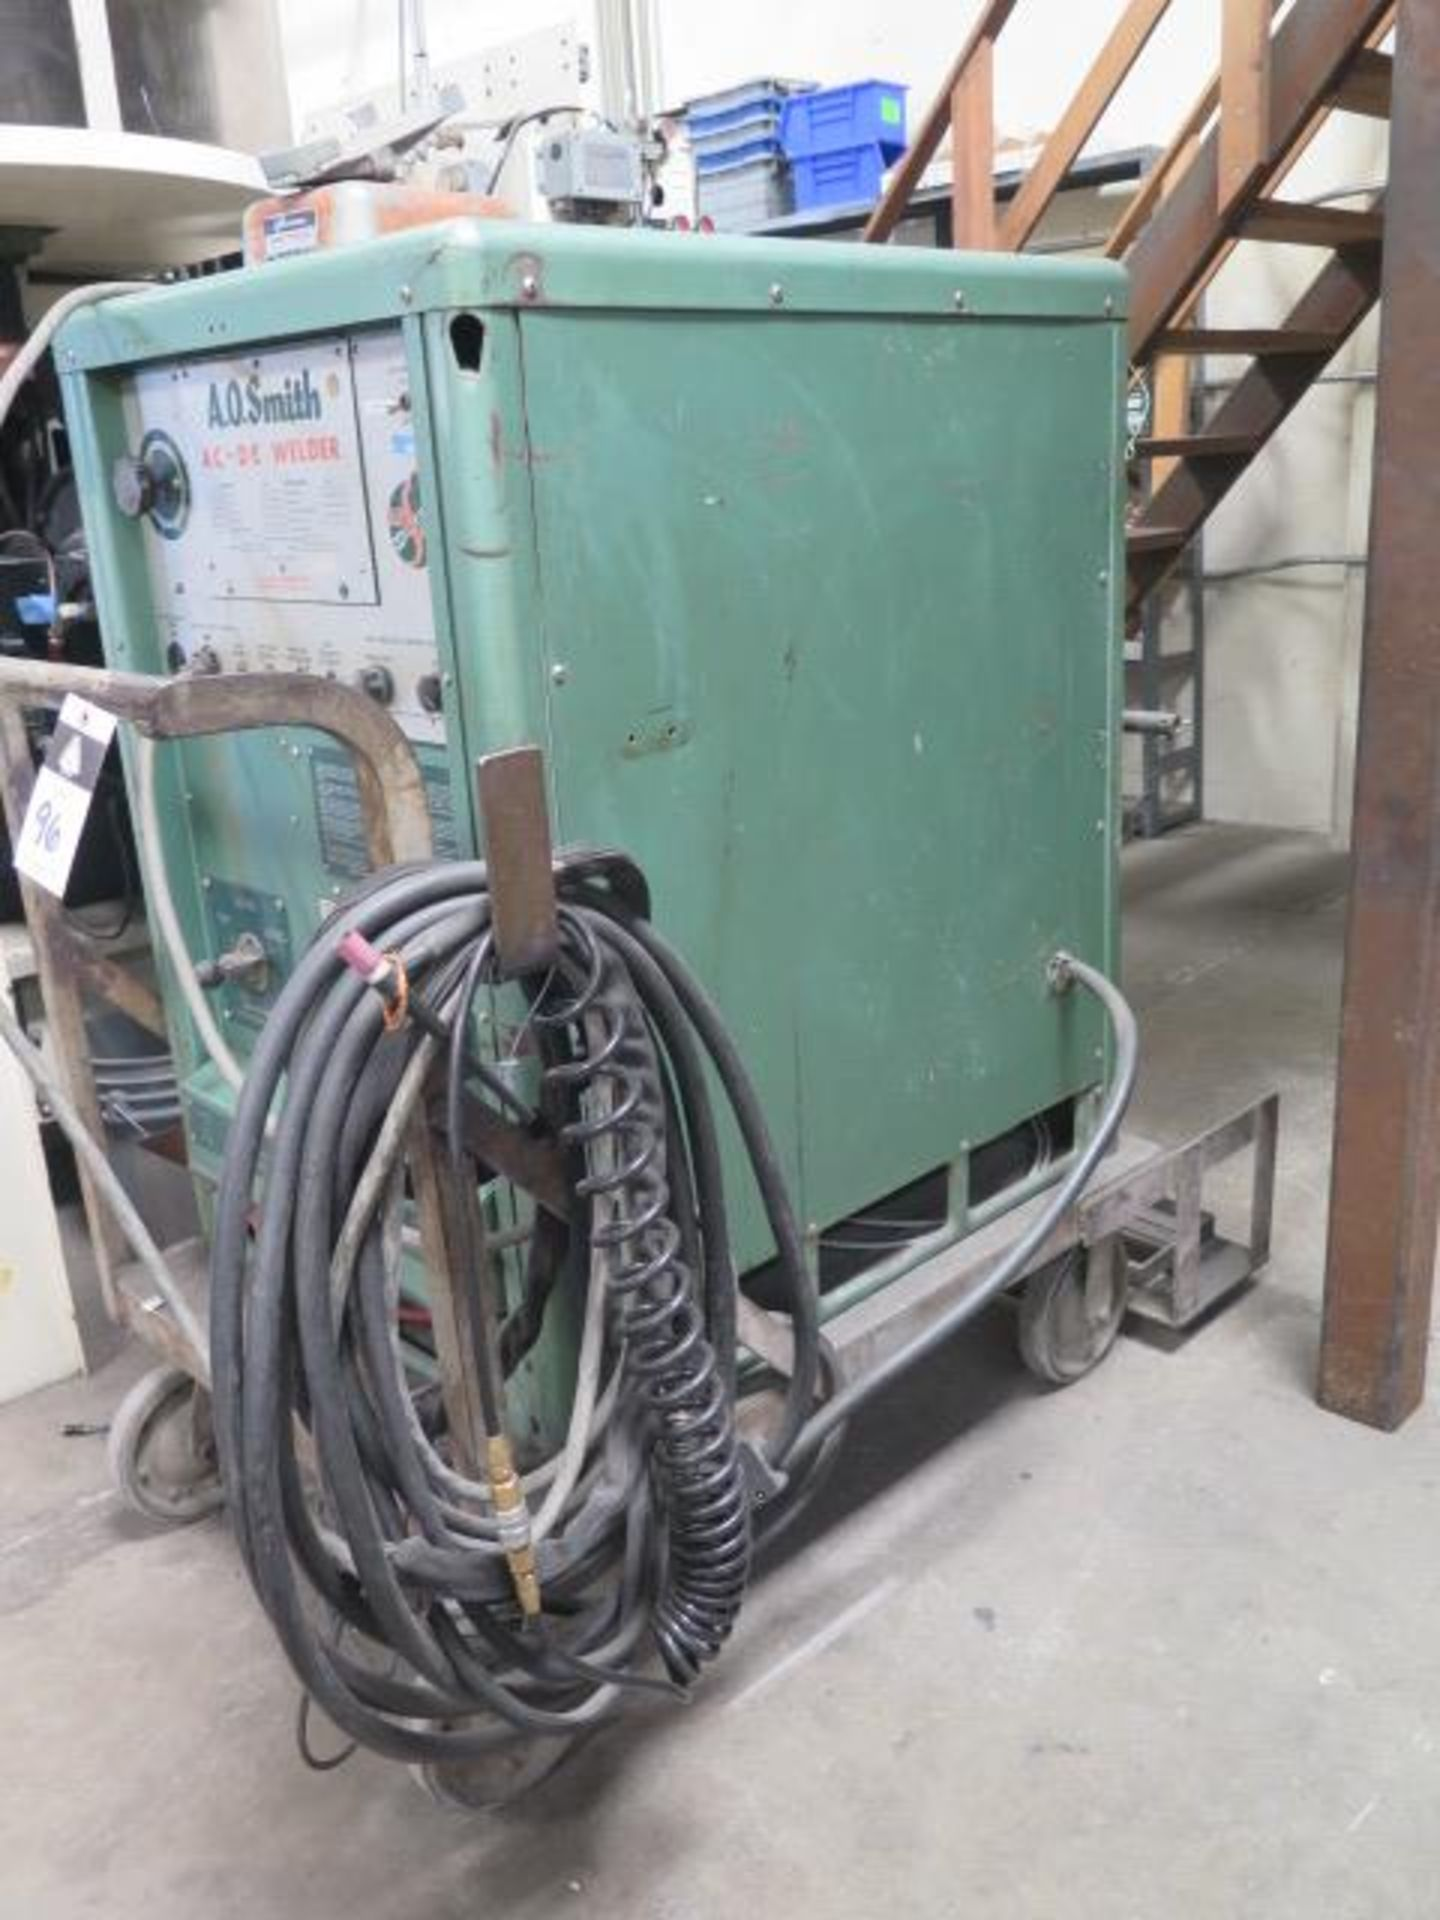 AO Smith A3000AD AFGW AC/DC Arc Welding Power Source s/n 1453-6043-8 (SOLD AS-IS - NO WARRANTY) - Image 2 of 8